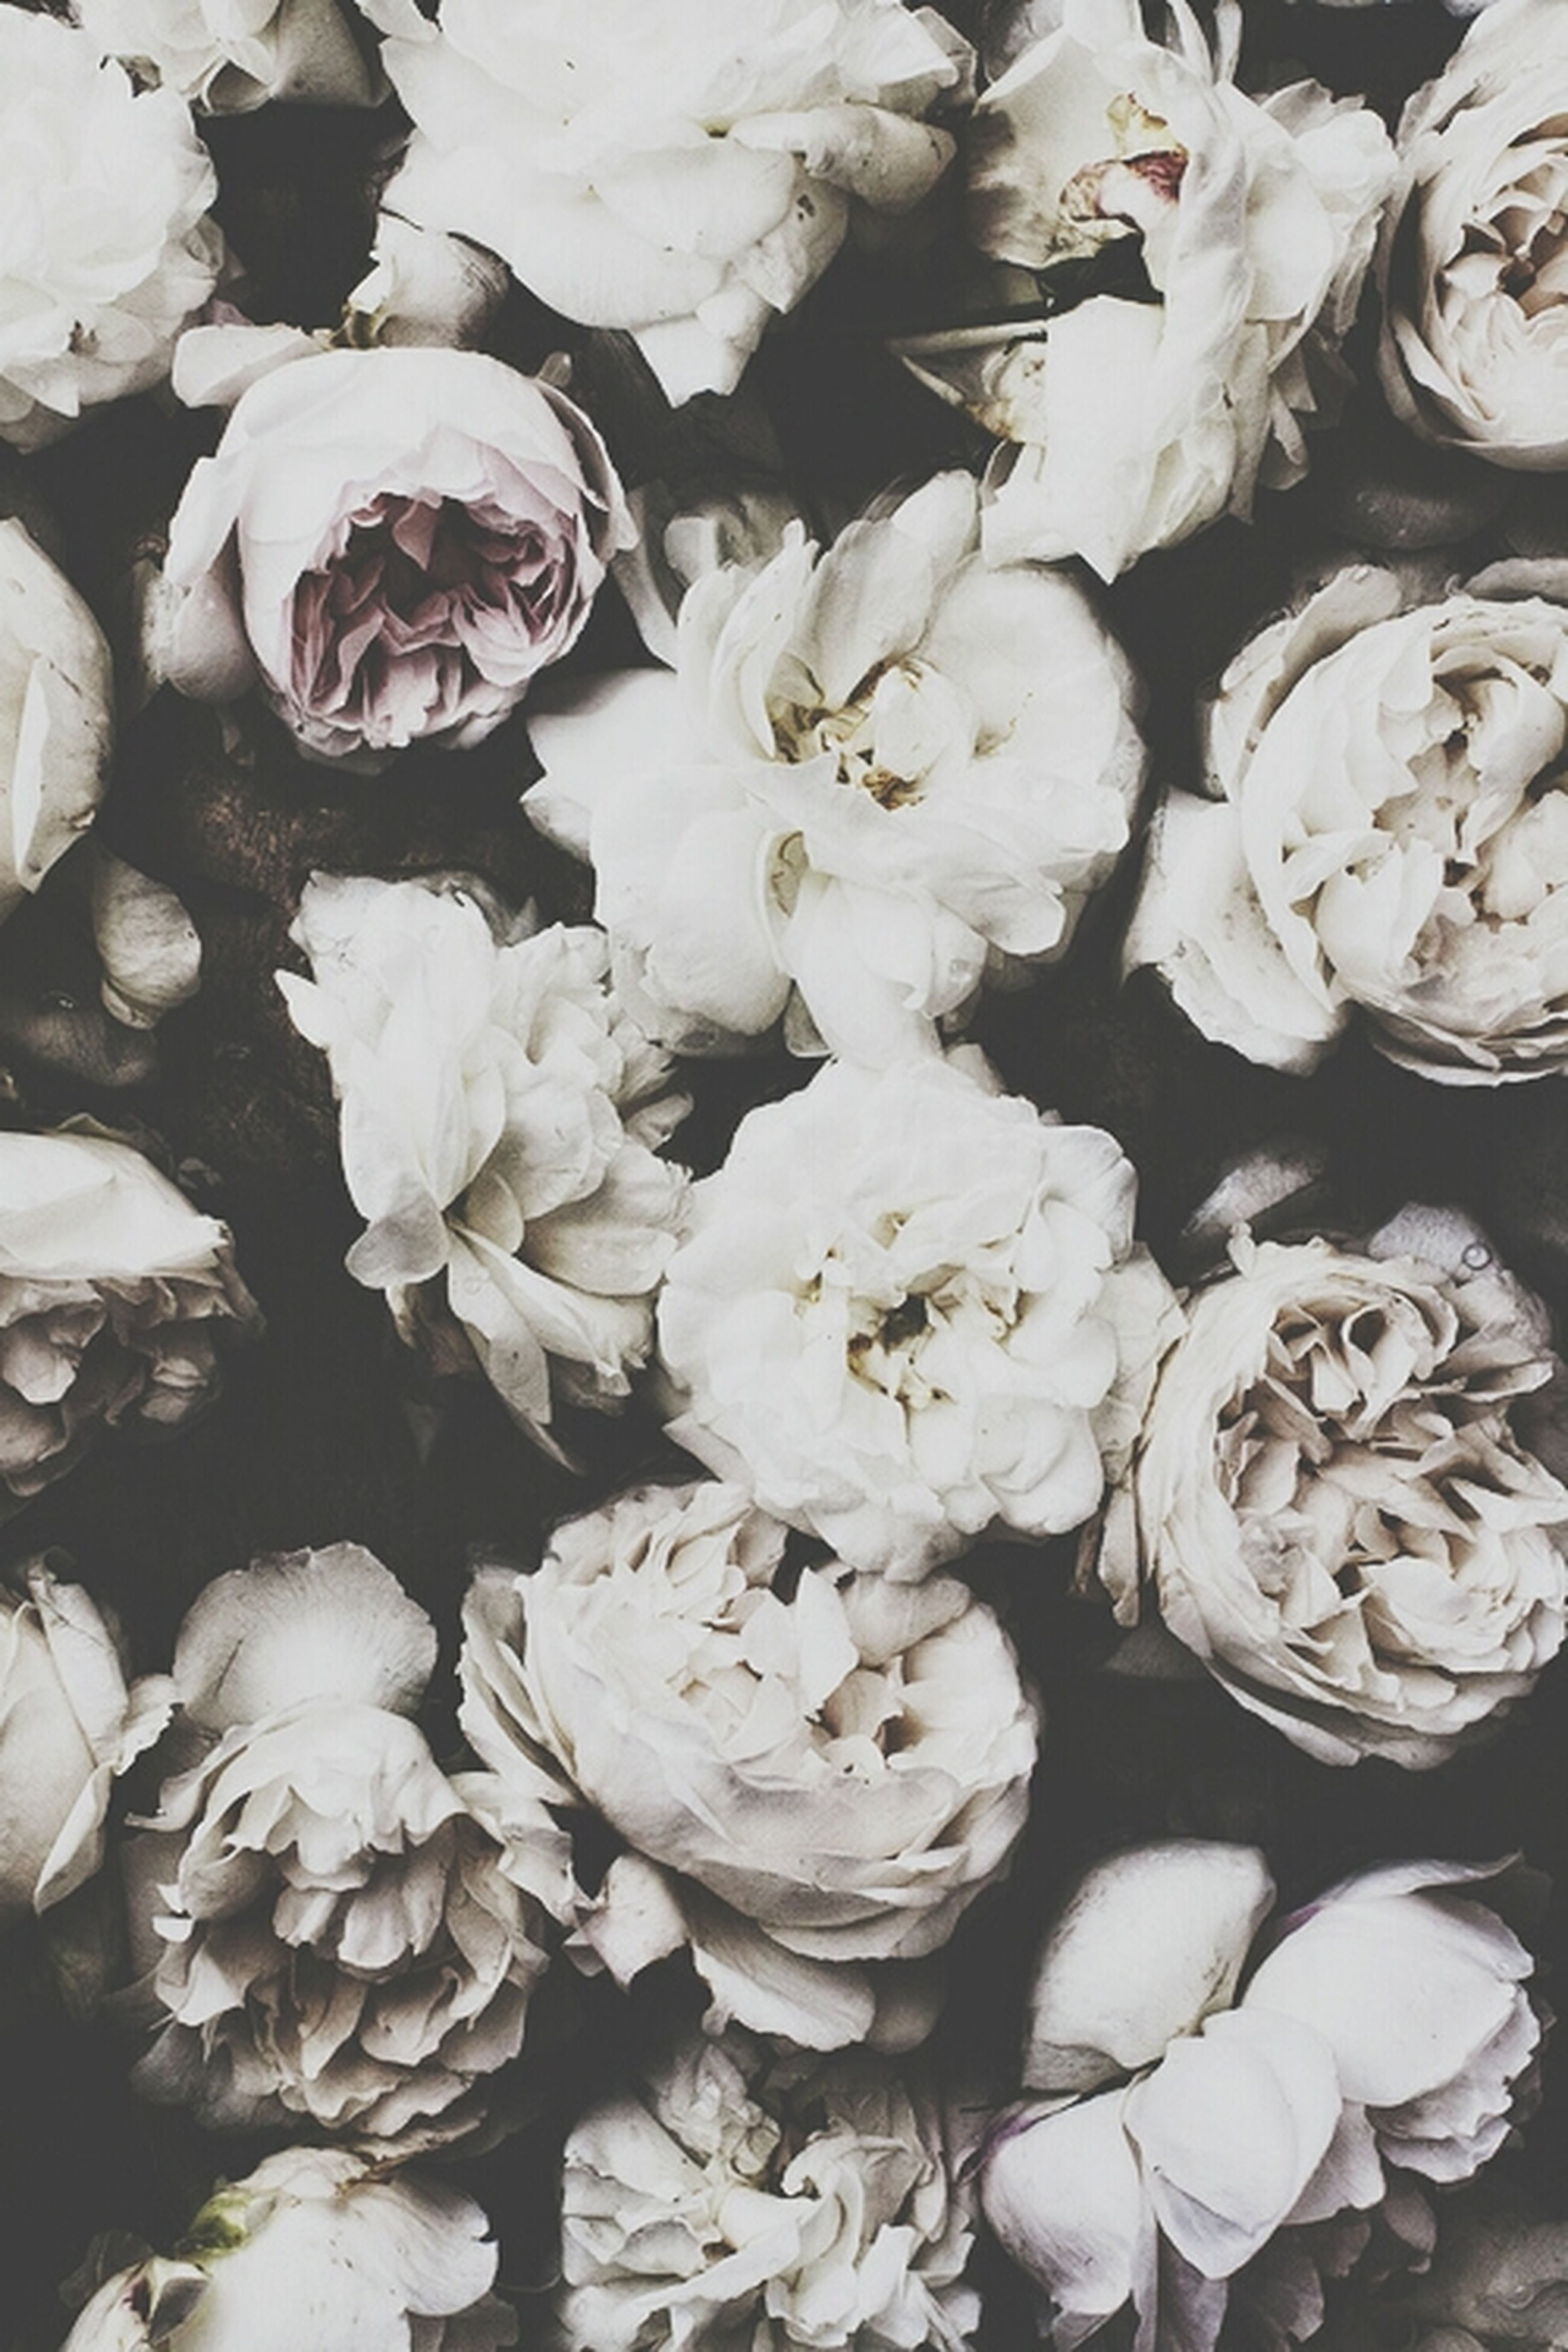 abundance, full frame, flower, white color, freshness, fragility, backgrounds, nature, high angle view, large group of objects, beauty in nature, petal, no people, white, variation, outdoors, day, close-up, flower head, growth